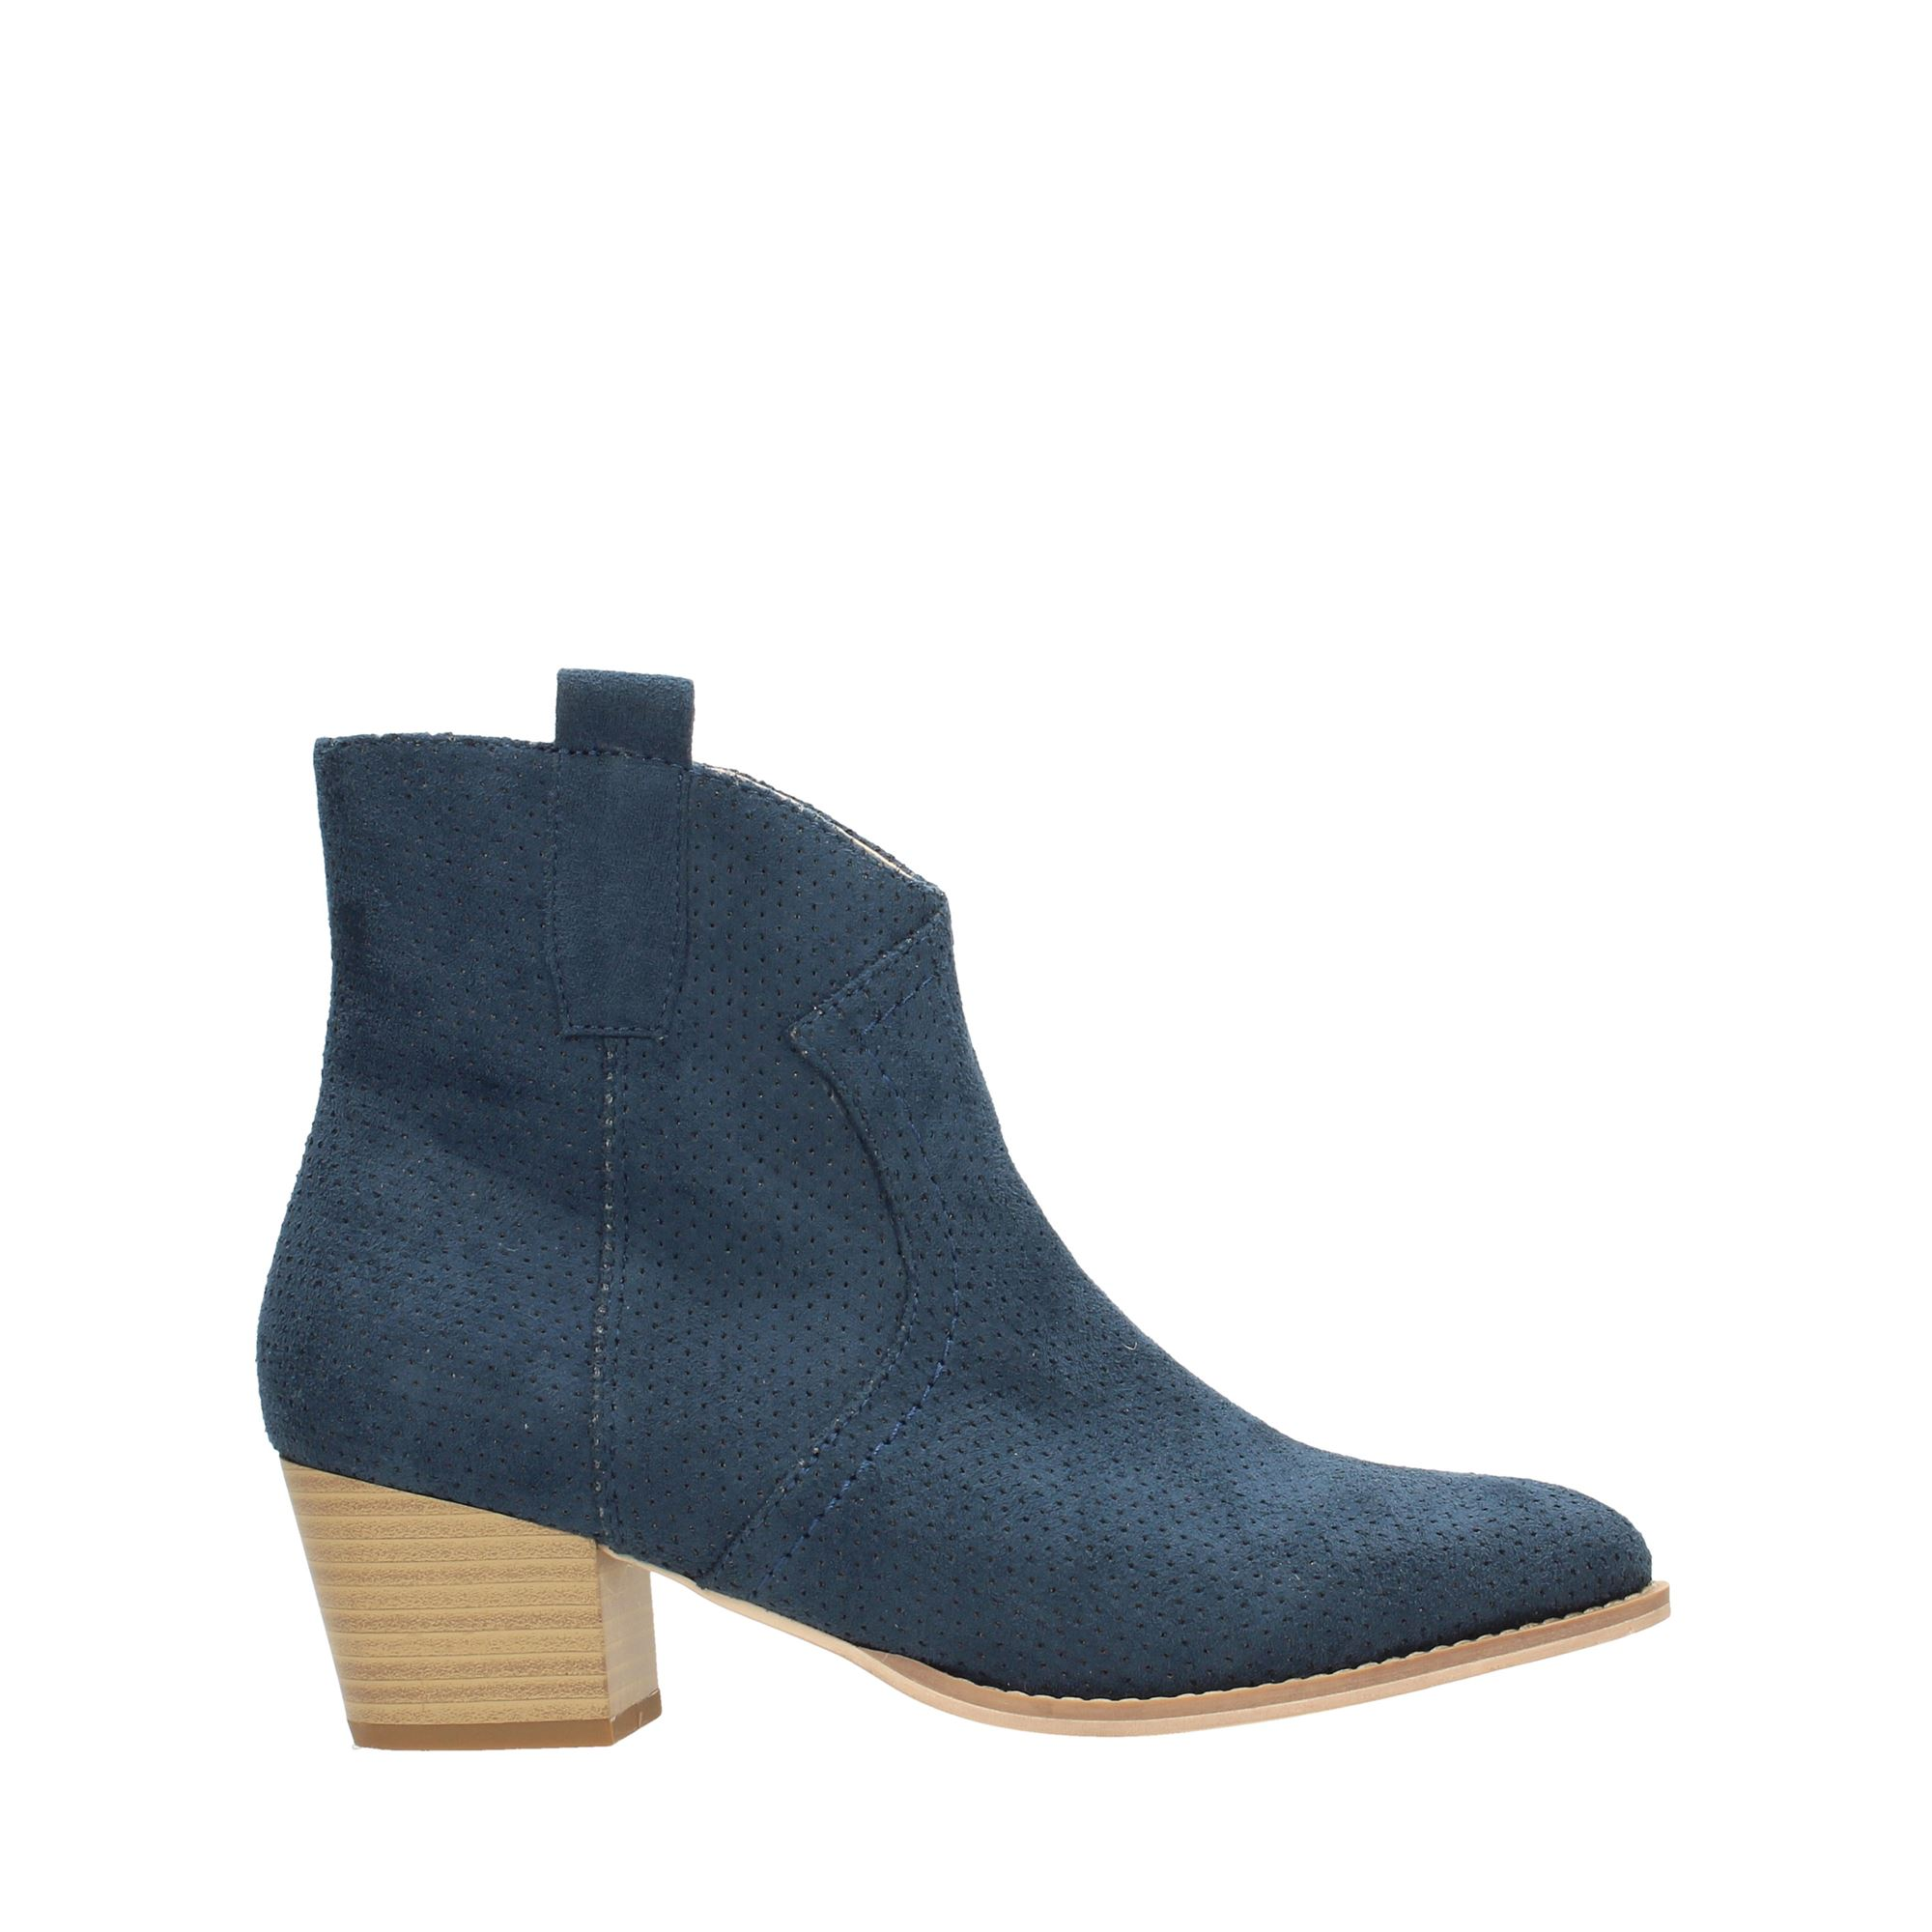 Tata Italia Shoes Woman Stivaletti Blue 55KLT05